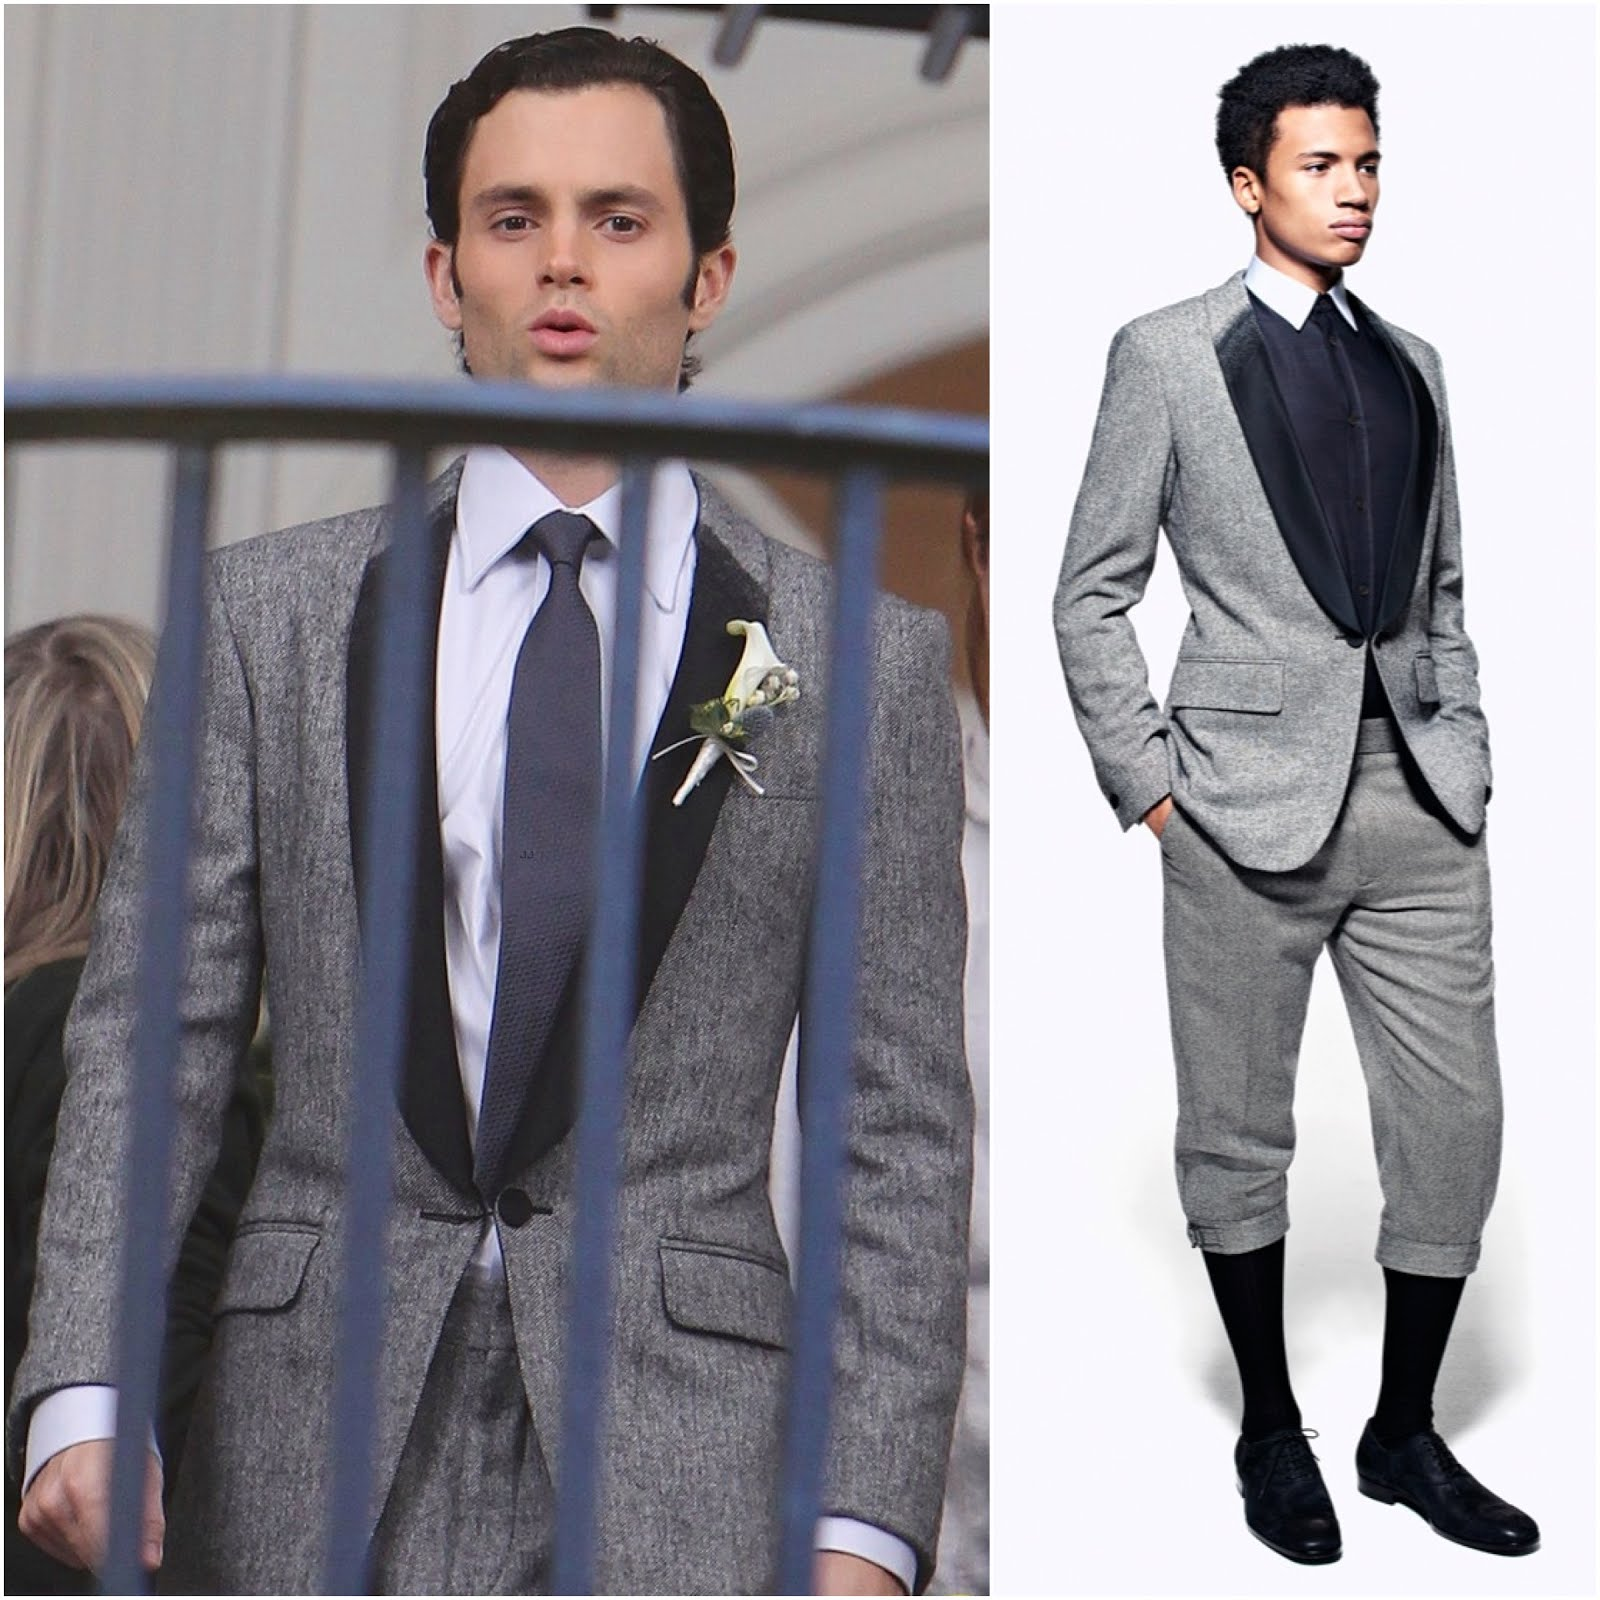 00O00 London Menswear Blog Penn Badgley in Alexander McQueen Wool-Blend and Satin-Twill Tuxedo Gossip Girl New York October 2012